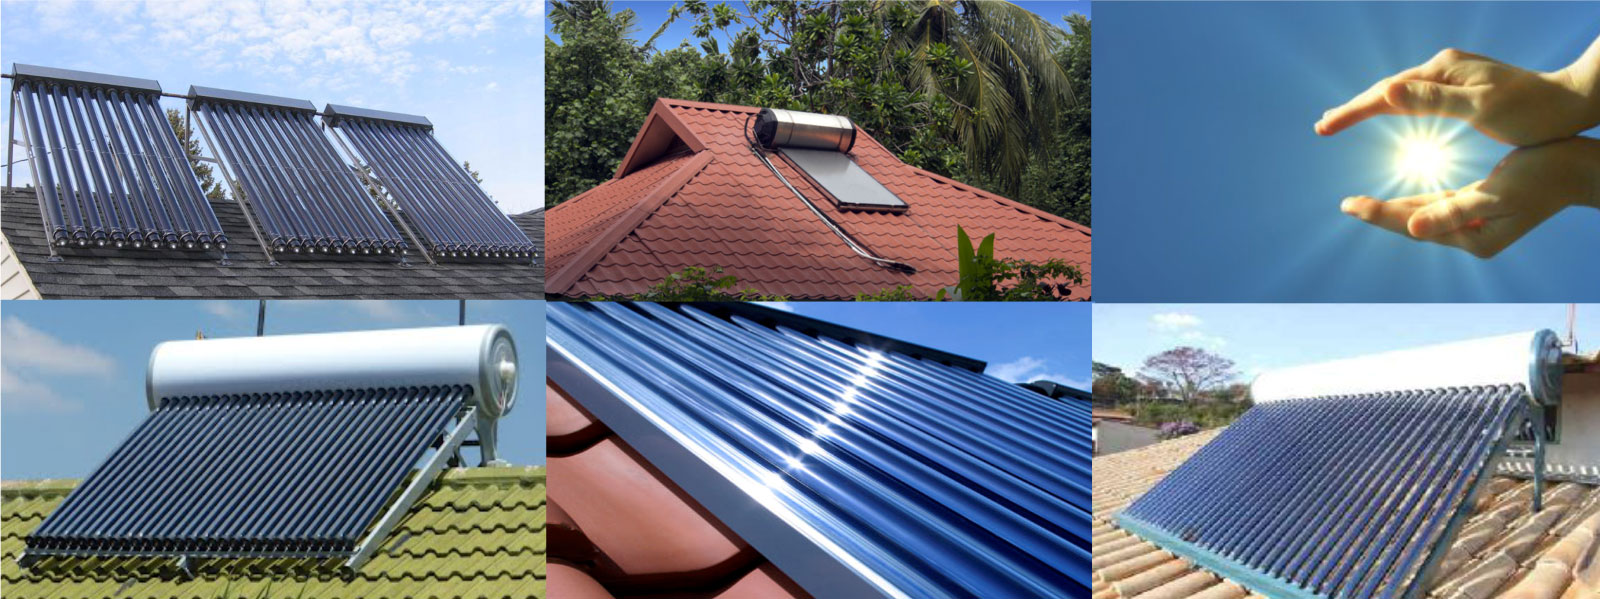 Classen Plumbing, Solar & Gas solar-heating-header Solar Heating Services Uncategorized